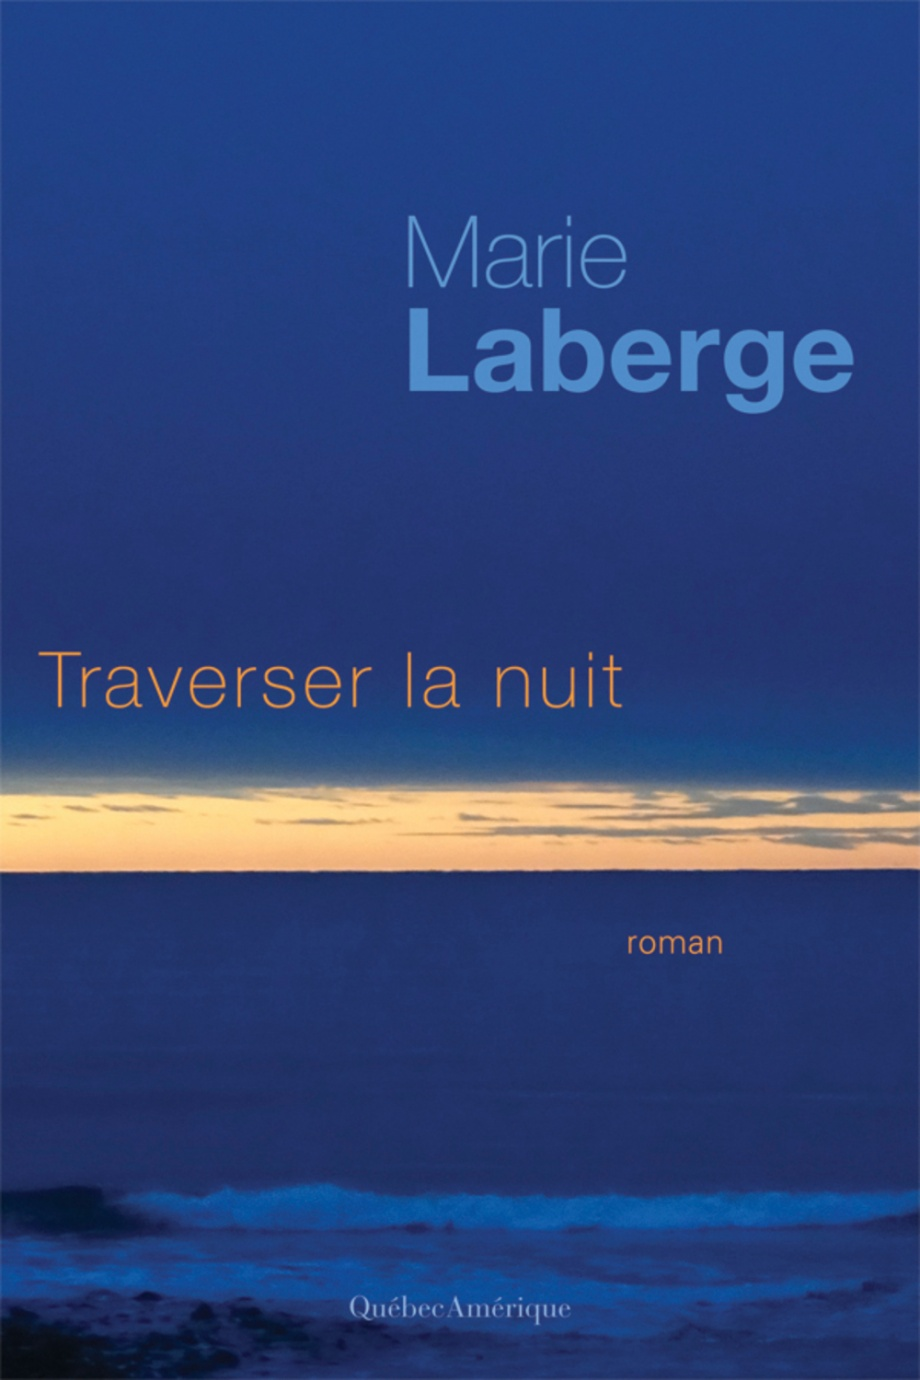 Marie Laberge